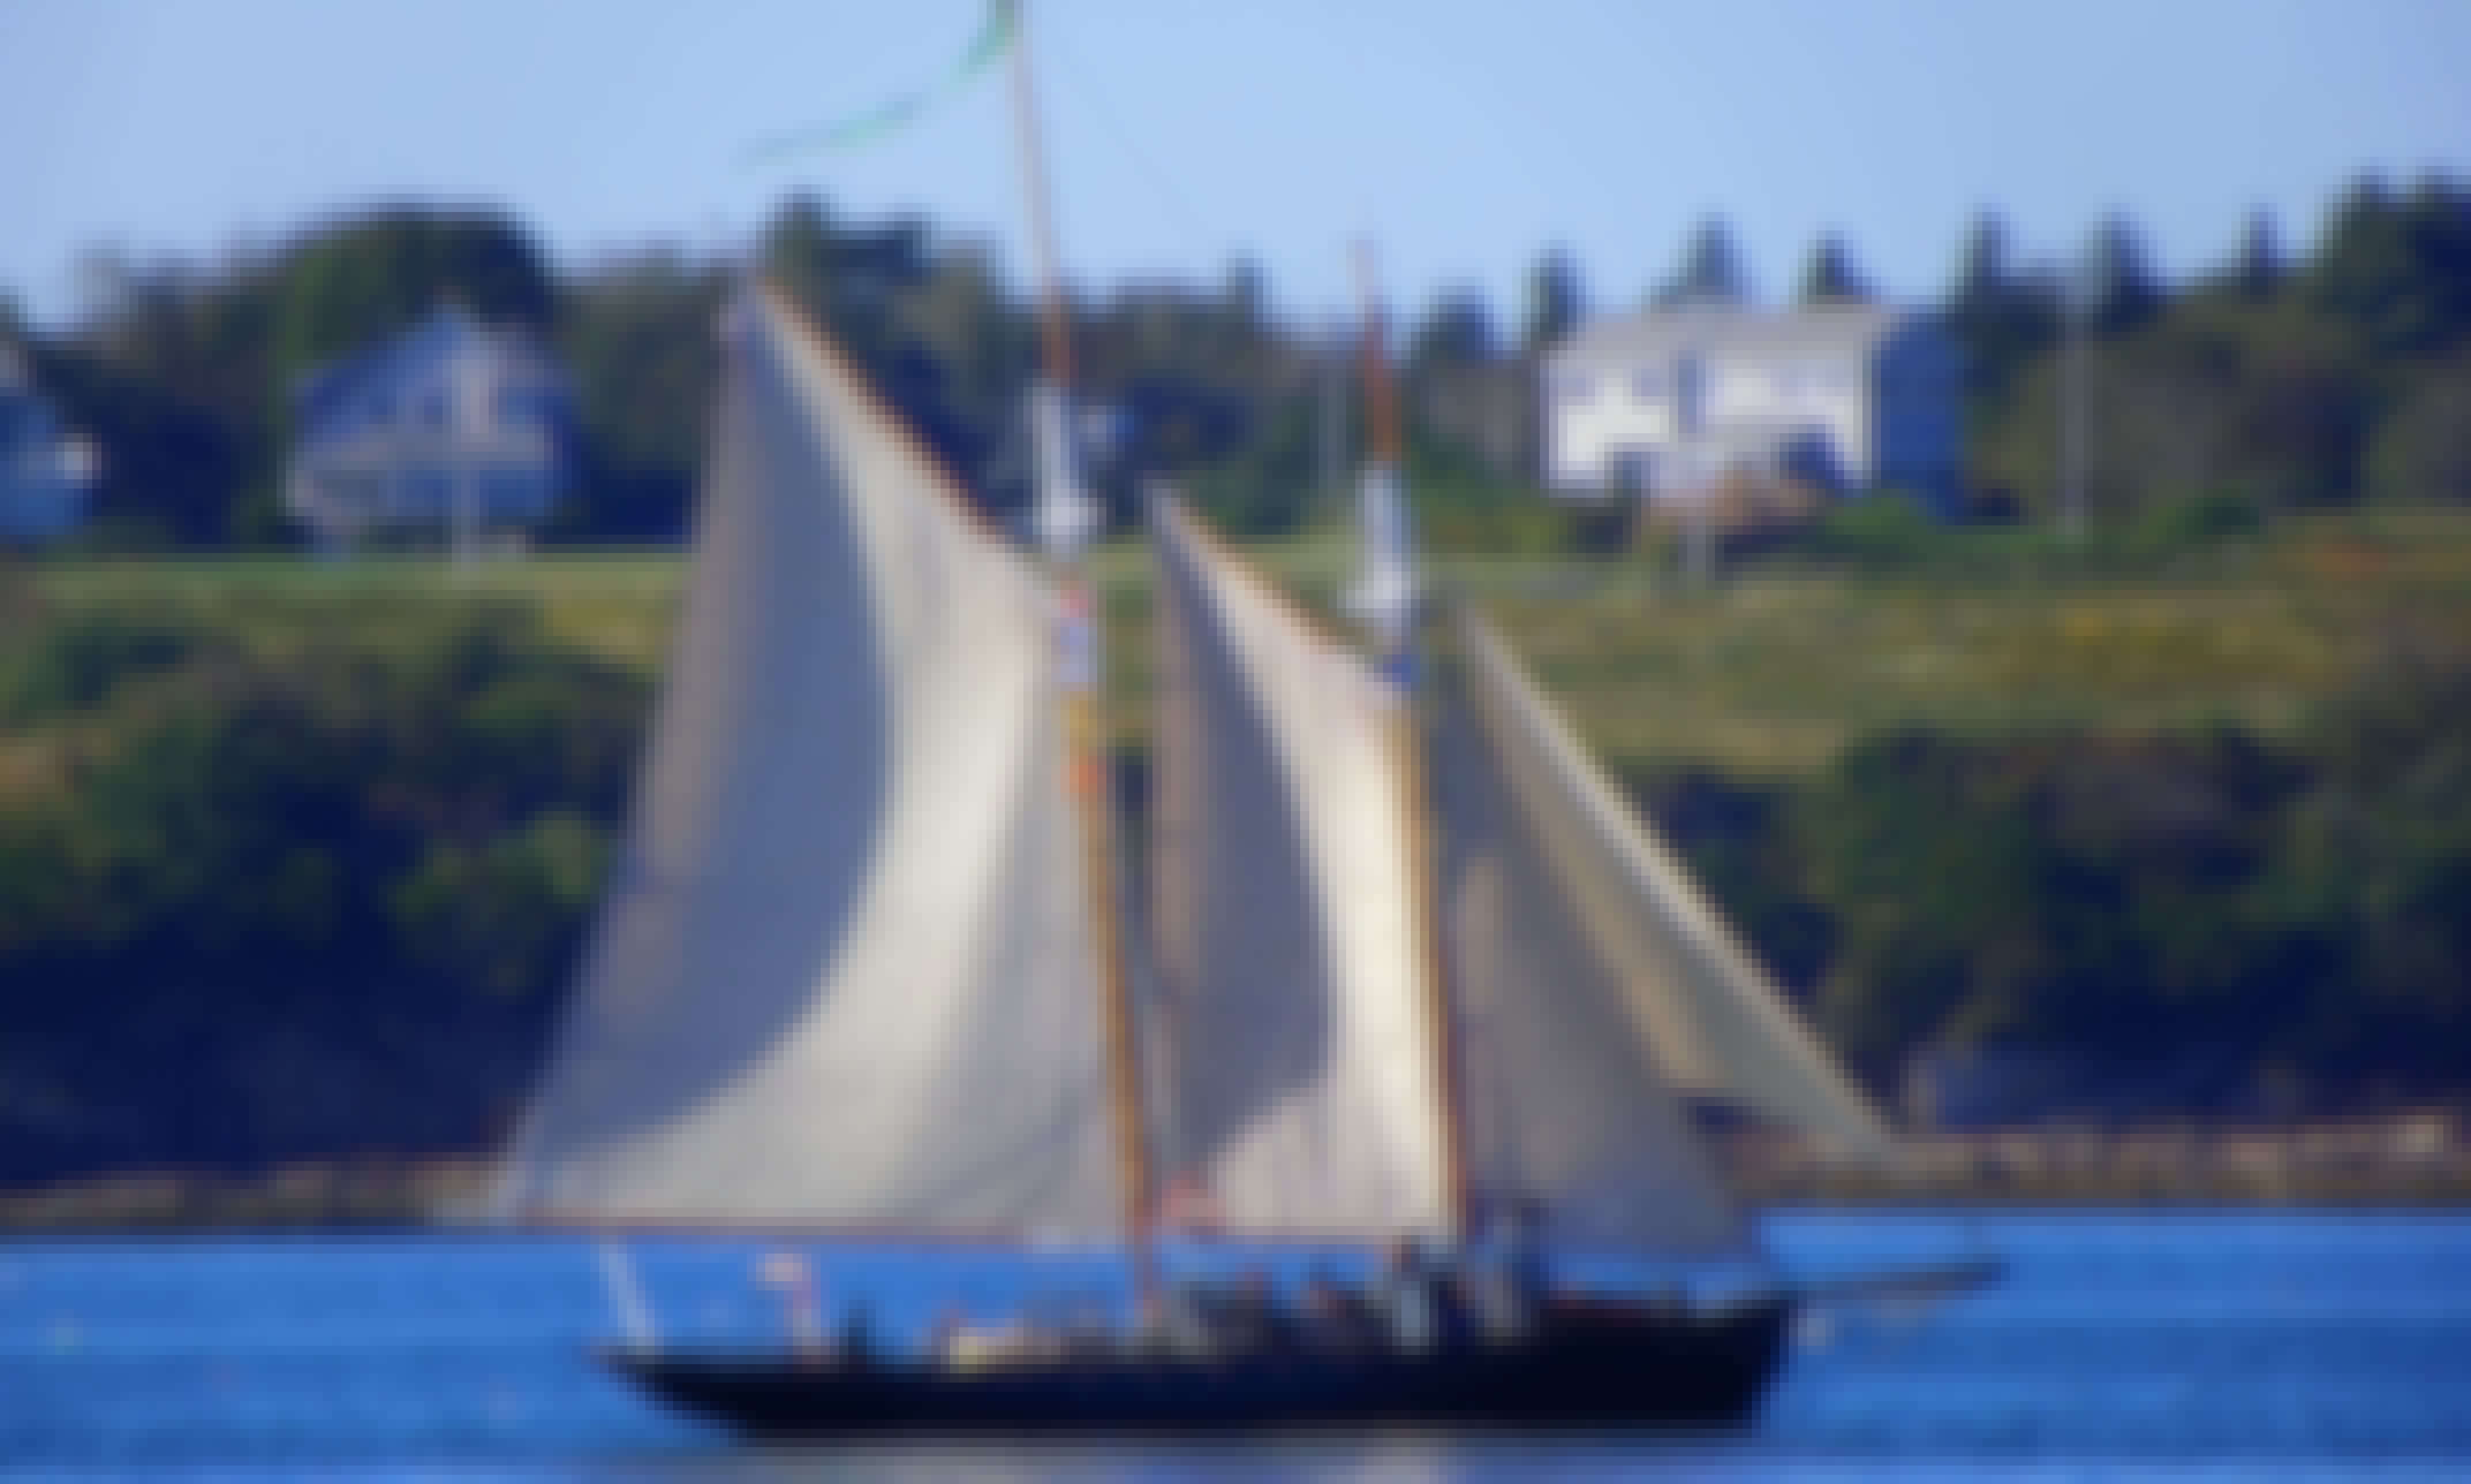 70' Sailing Schooner - Private Charter with USCG Licensed Captain in Harpswell, Maine